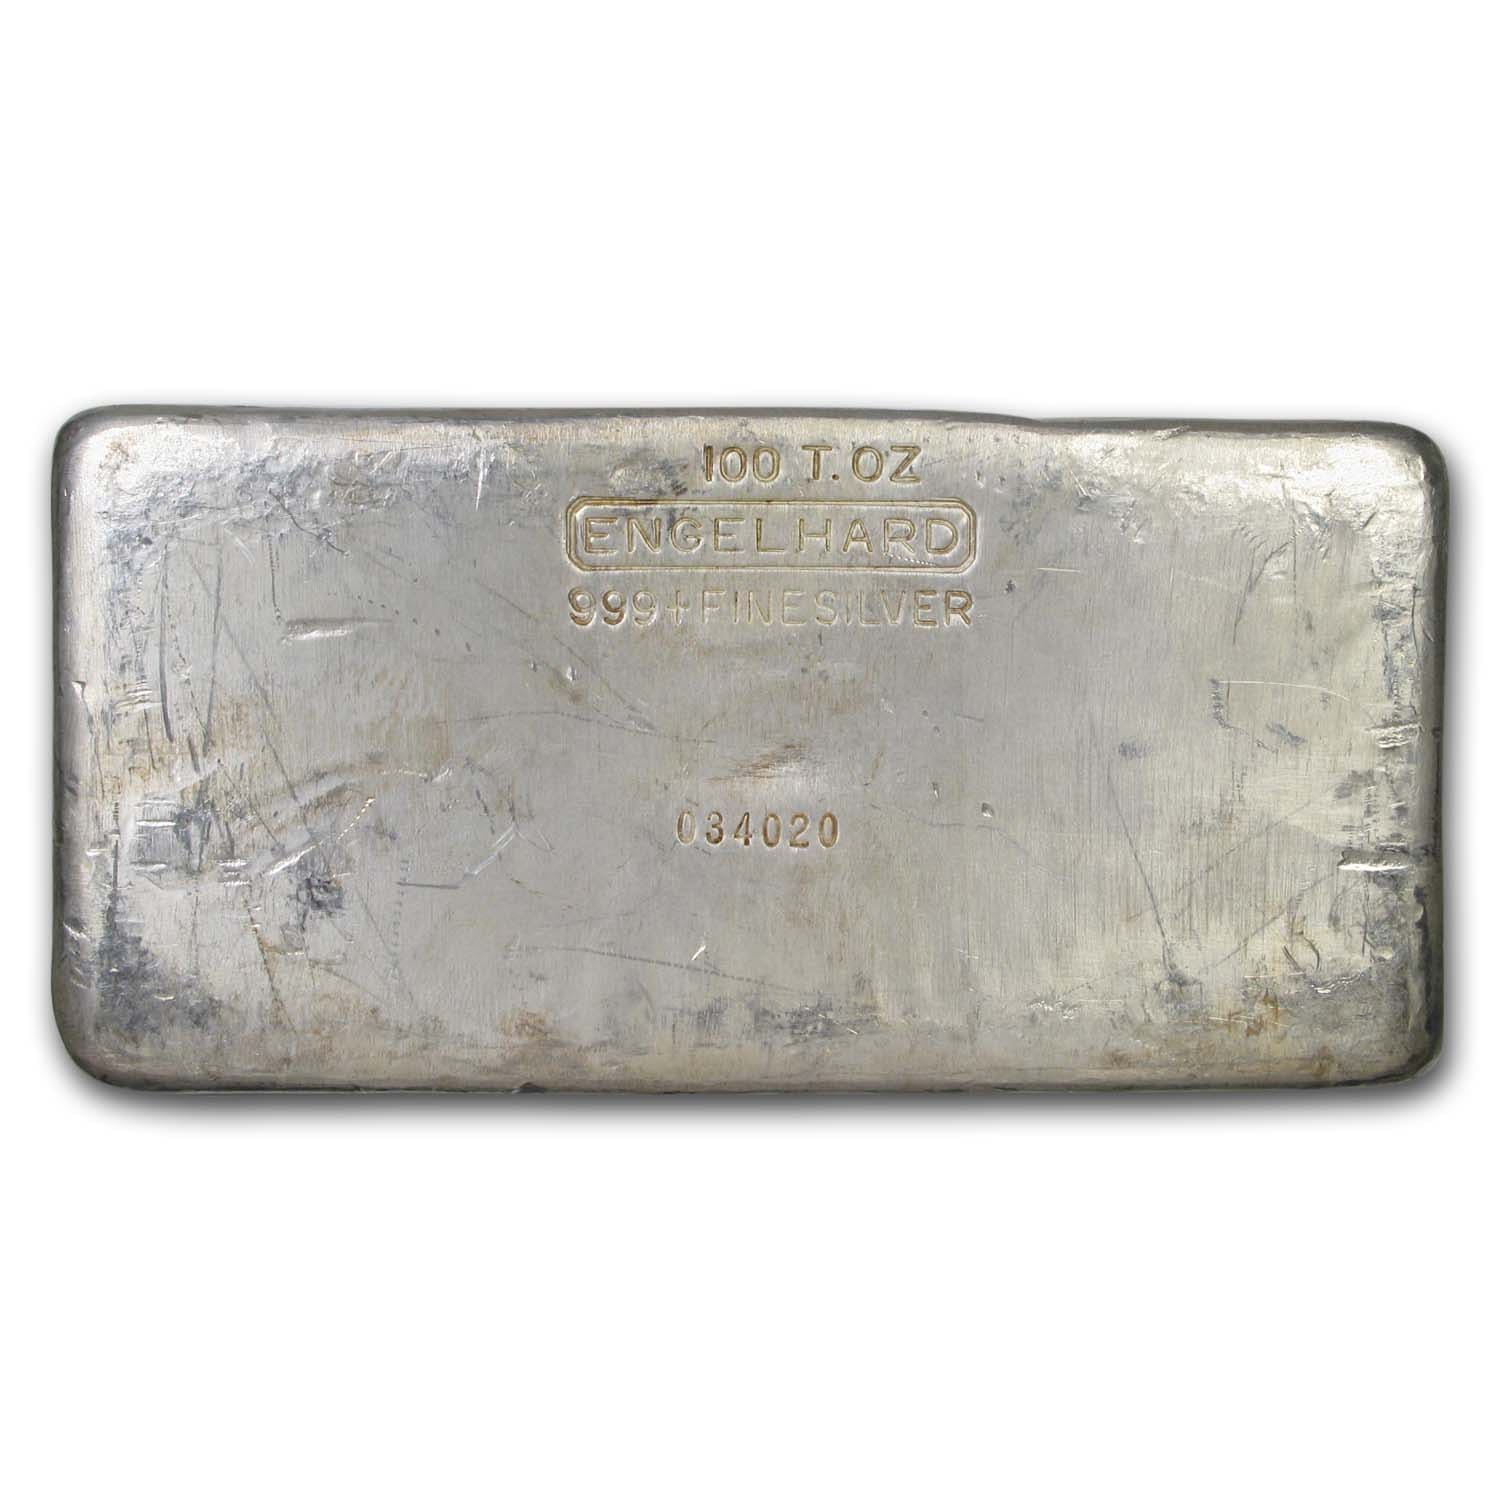 100 Oz Silver Bar Engelhard Second Generation Poured